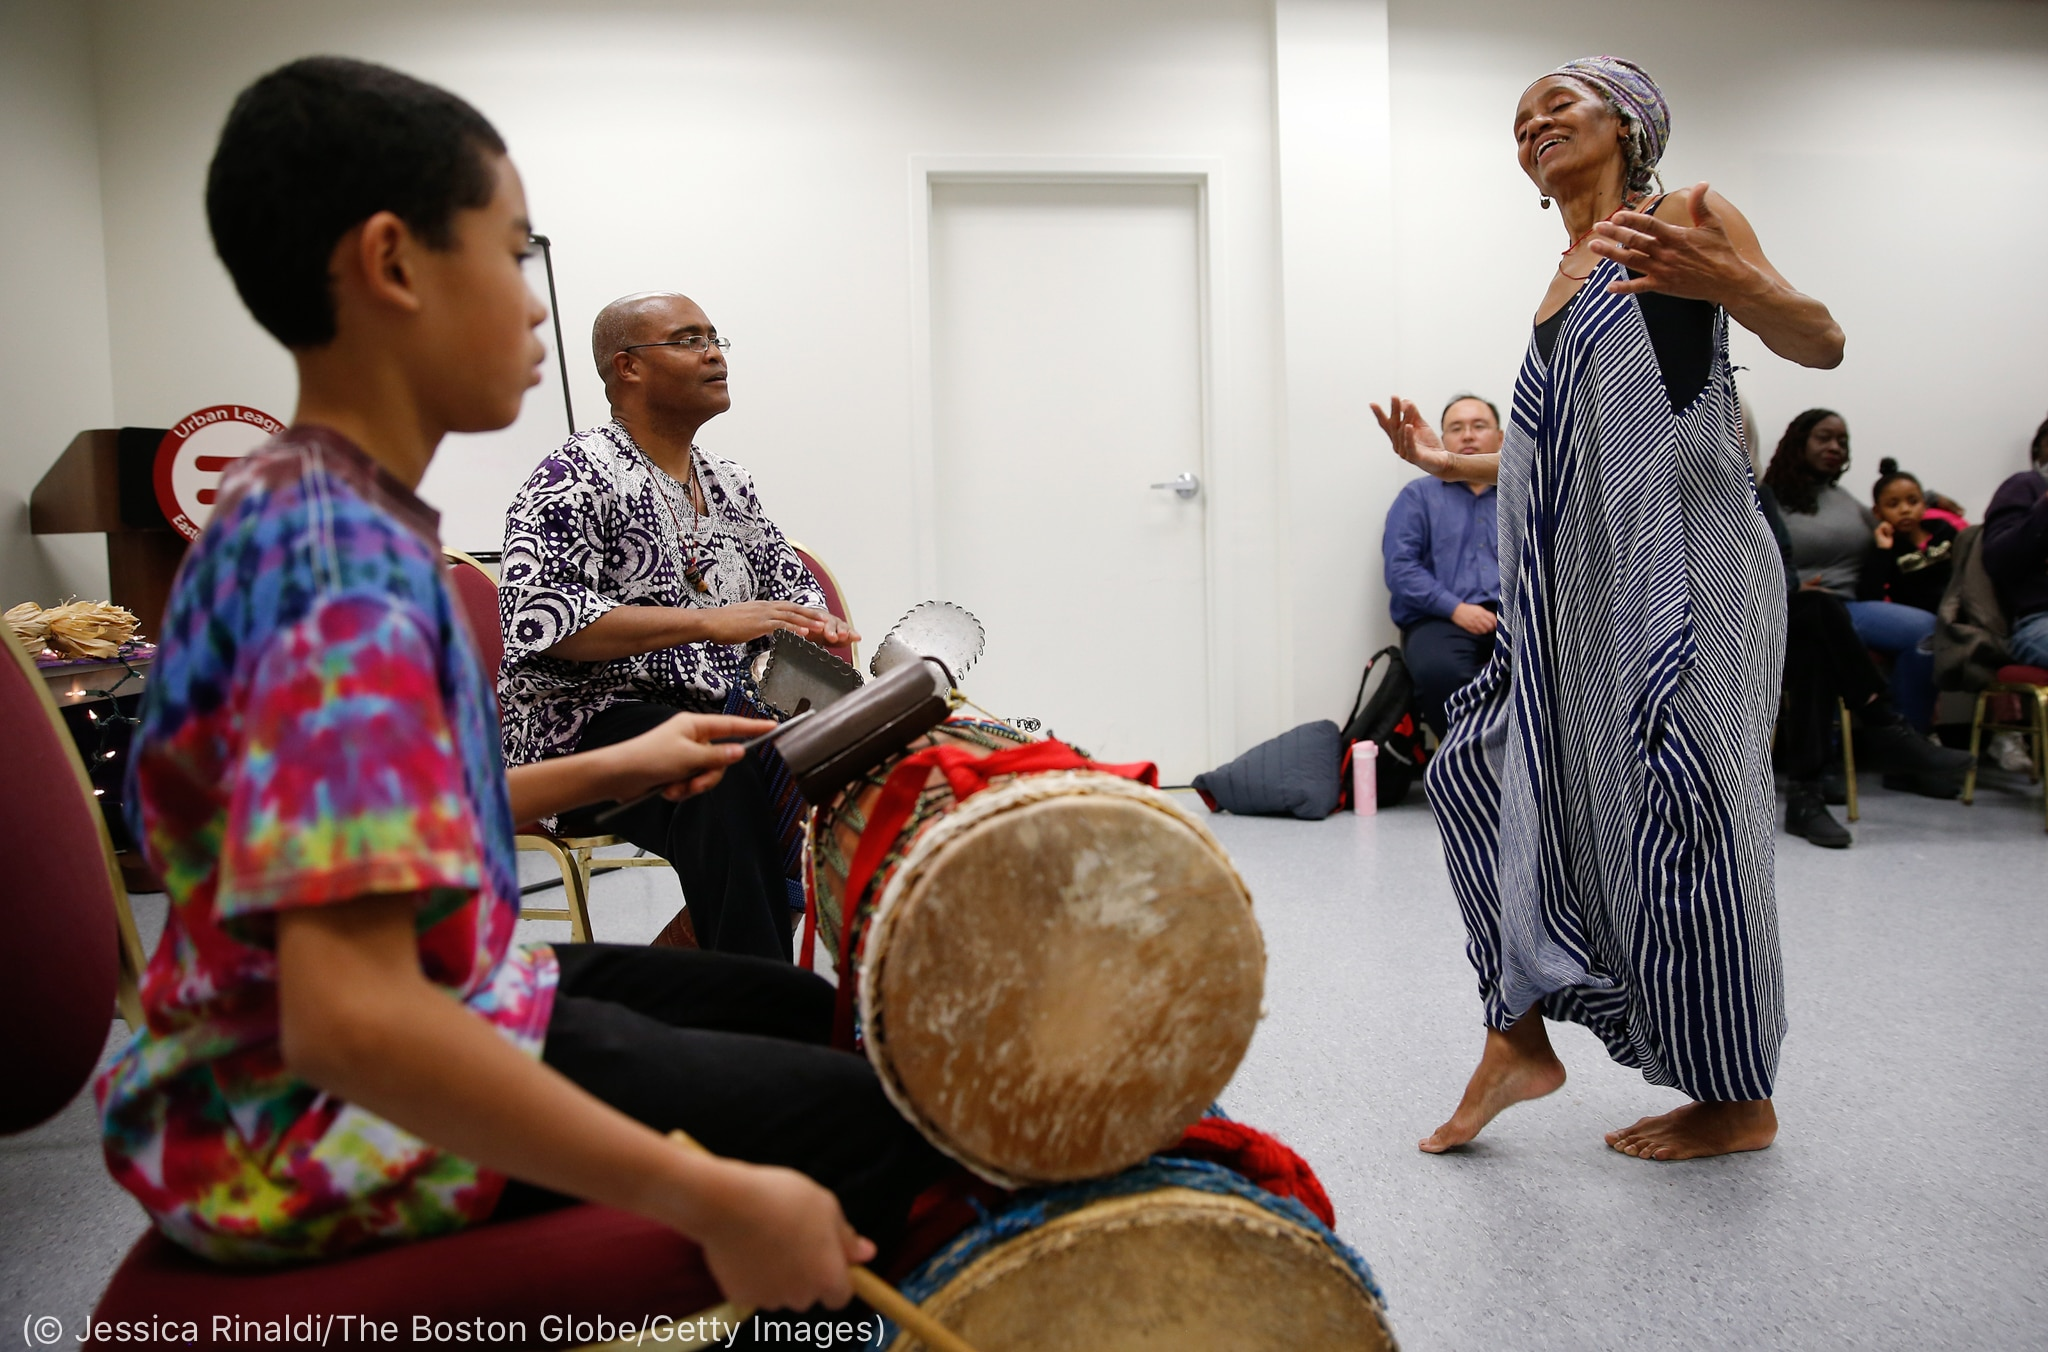 Woman dancing as other people play music (© Jessica Rinaldi/The Boston Globe/Getty Images)